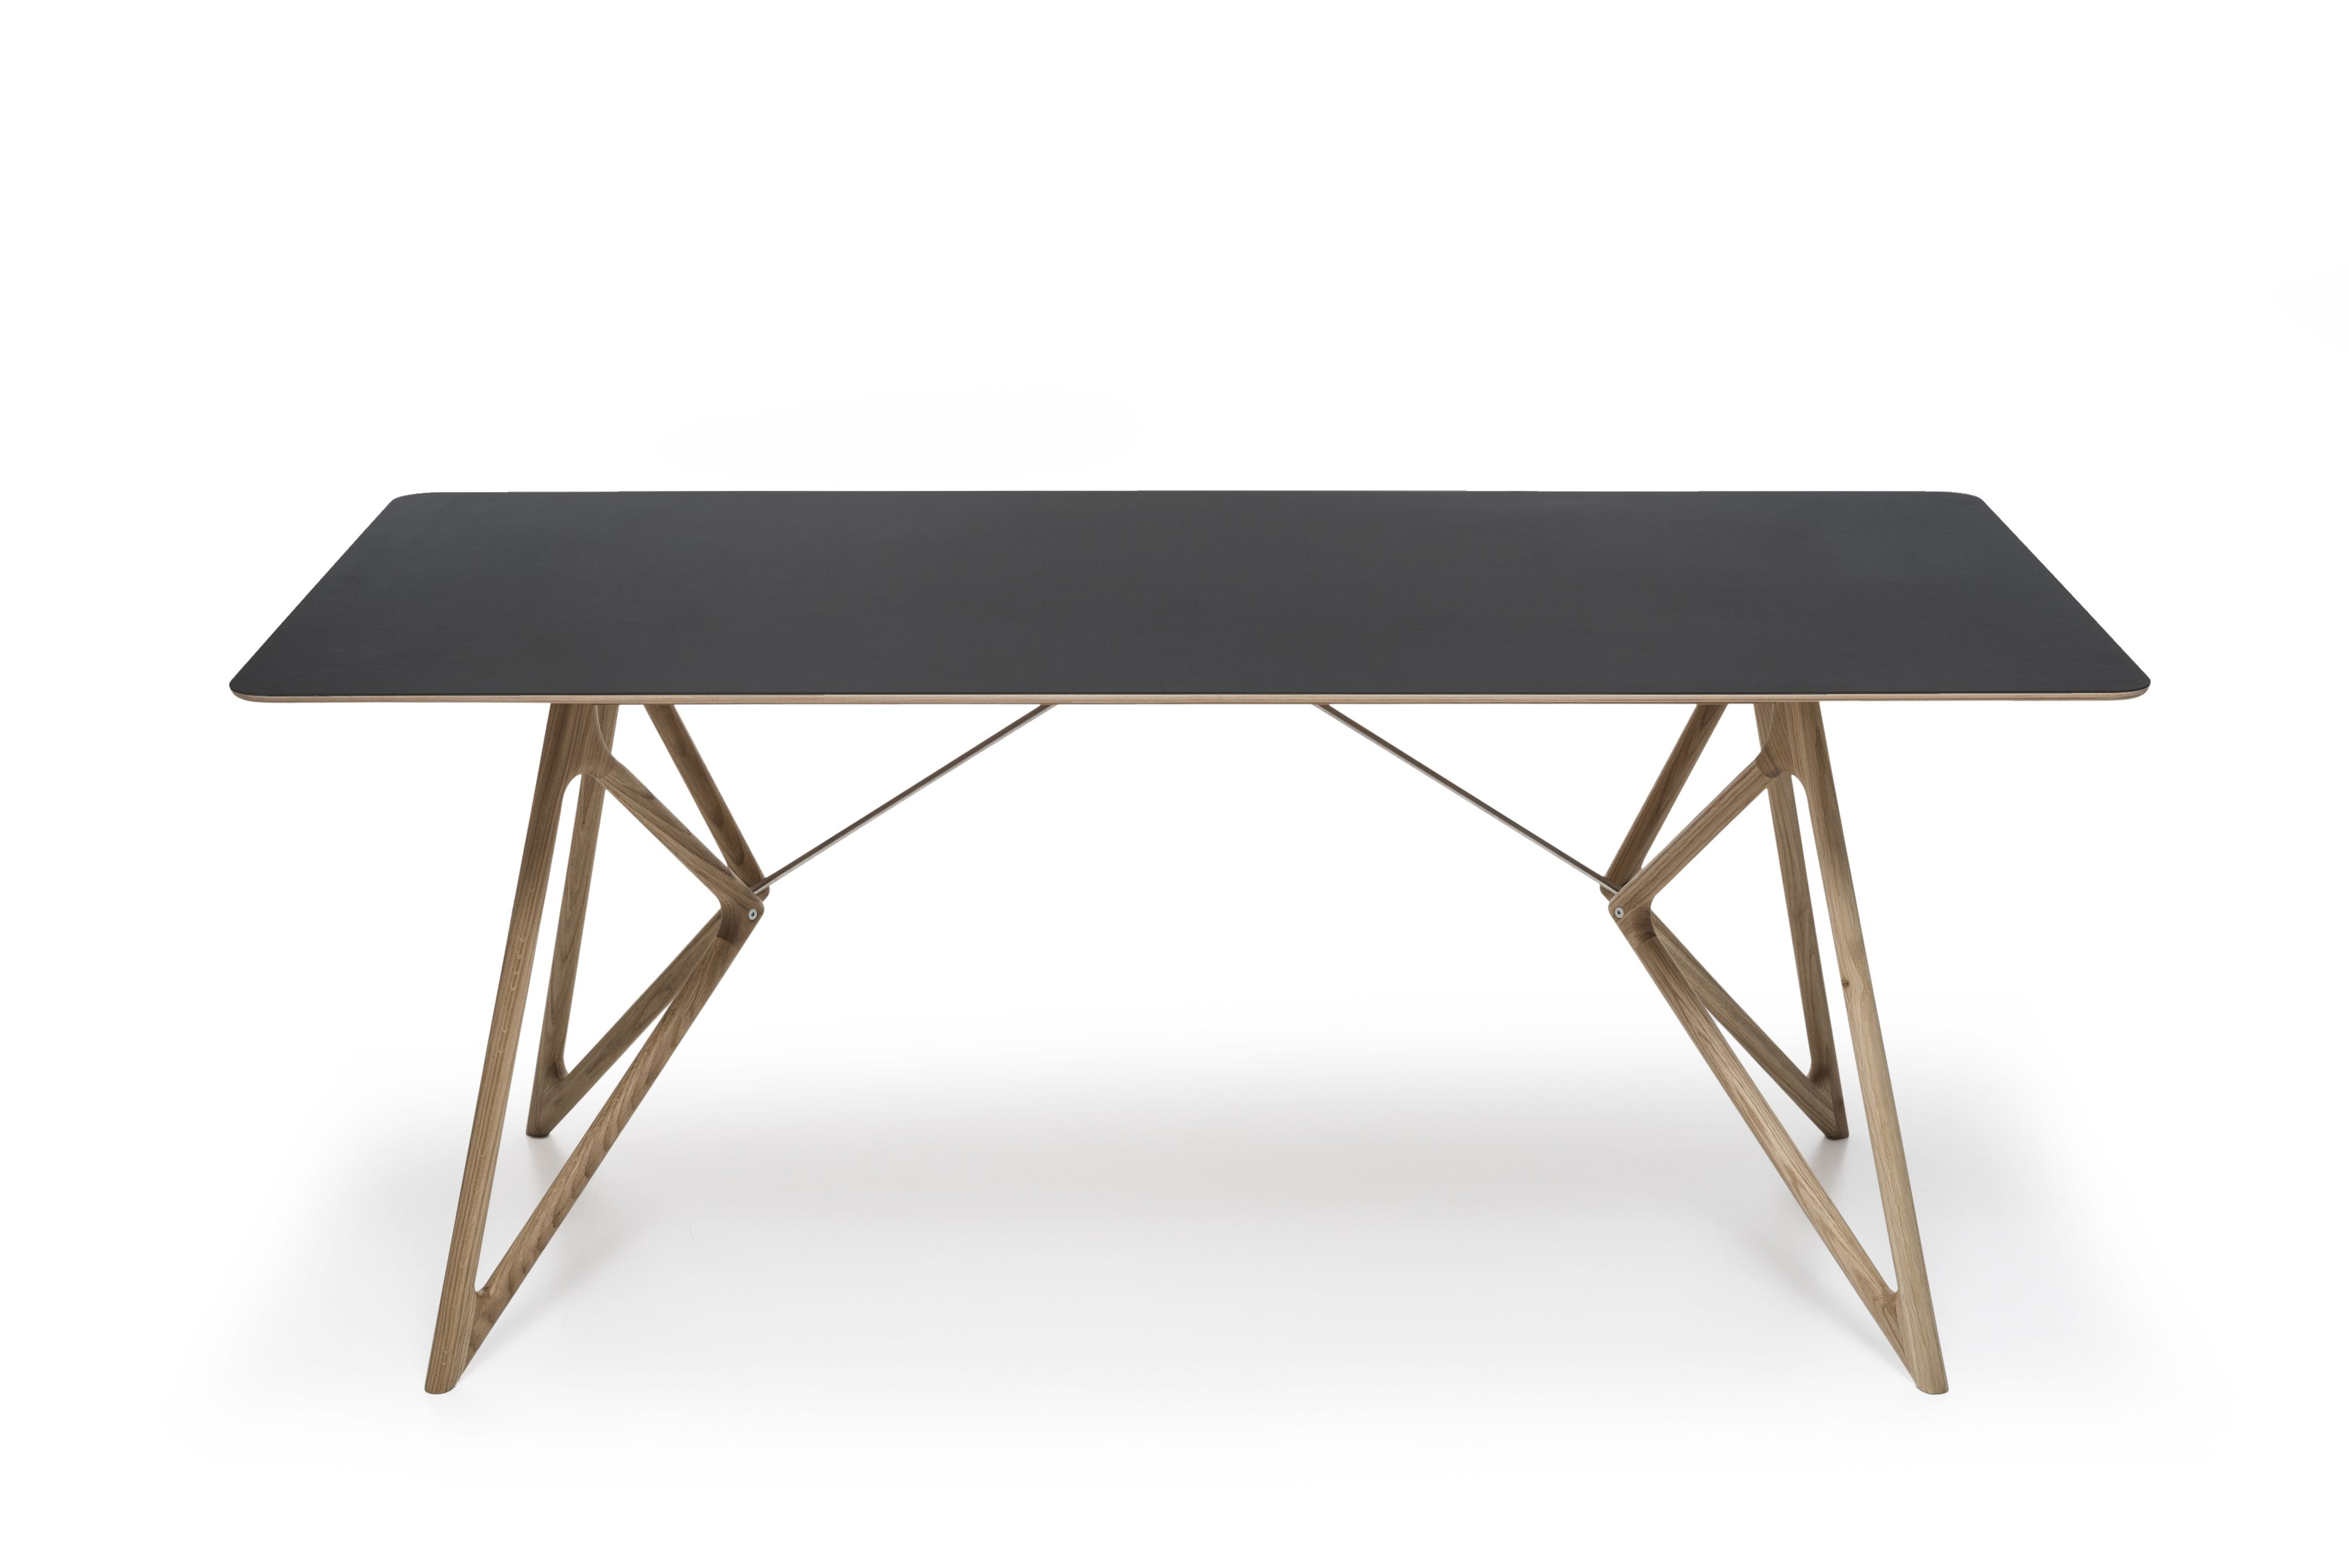 Tink table linoleum nero Tink dining room collection